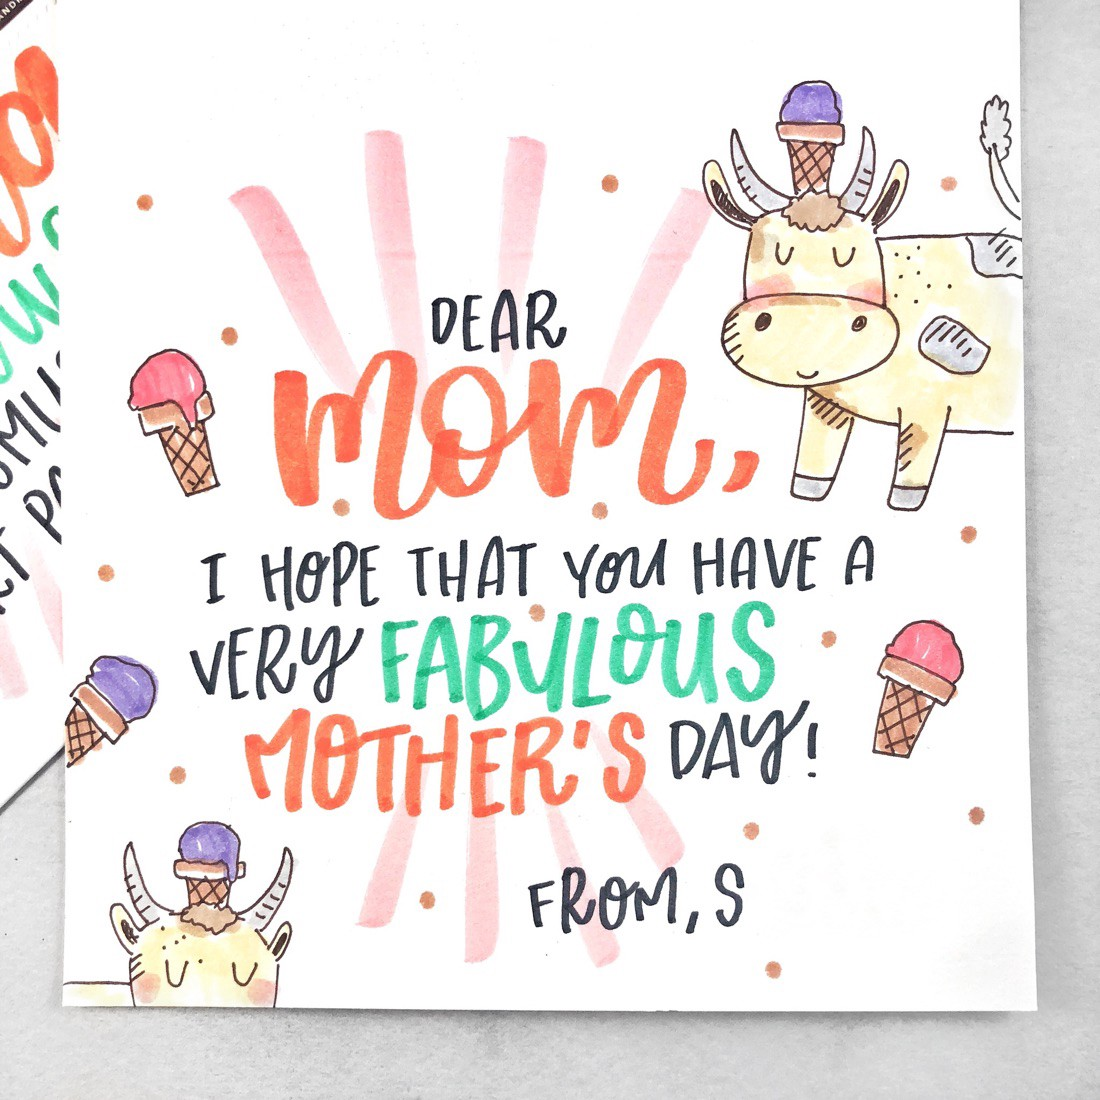 What To Write In Your Mother's Day Card